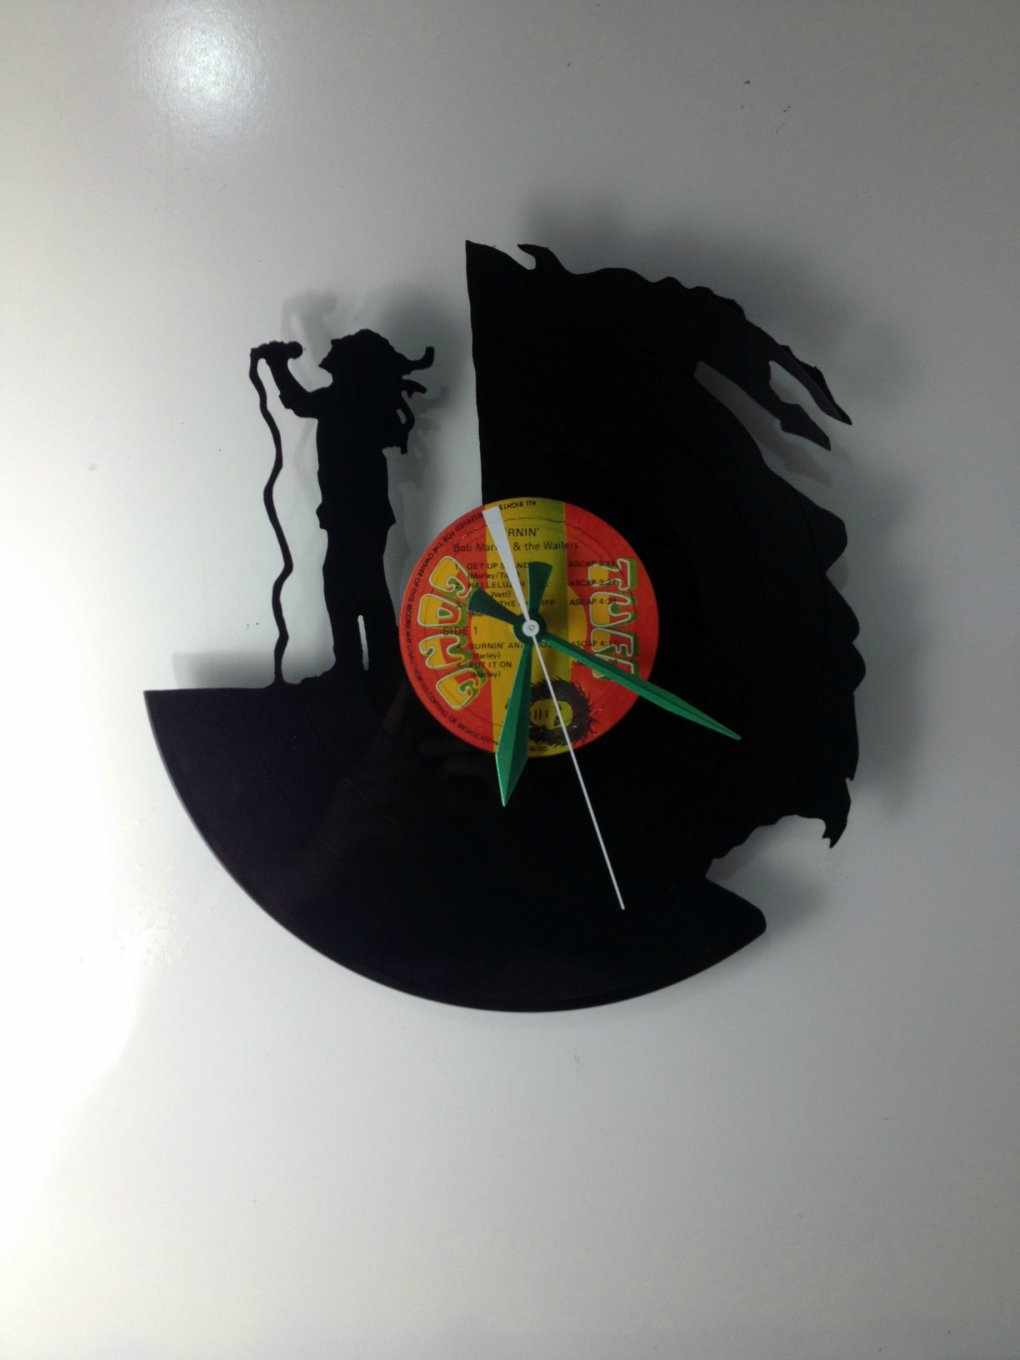 pirdoxi - hand cut onto vinyl records